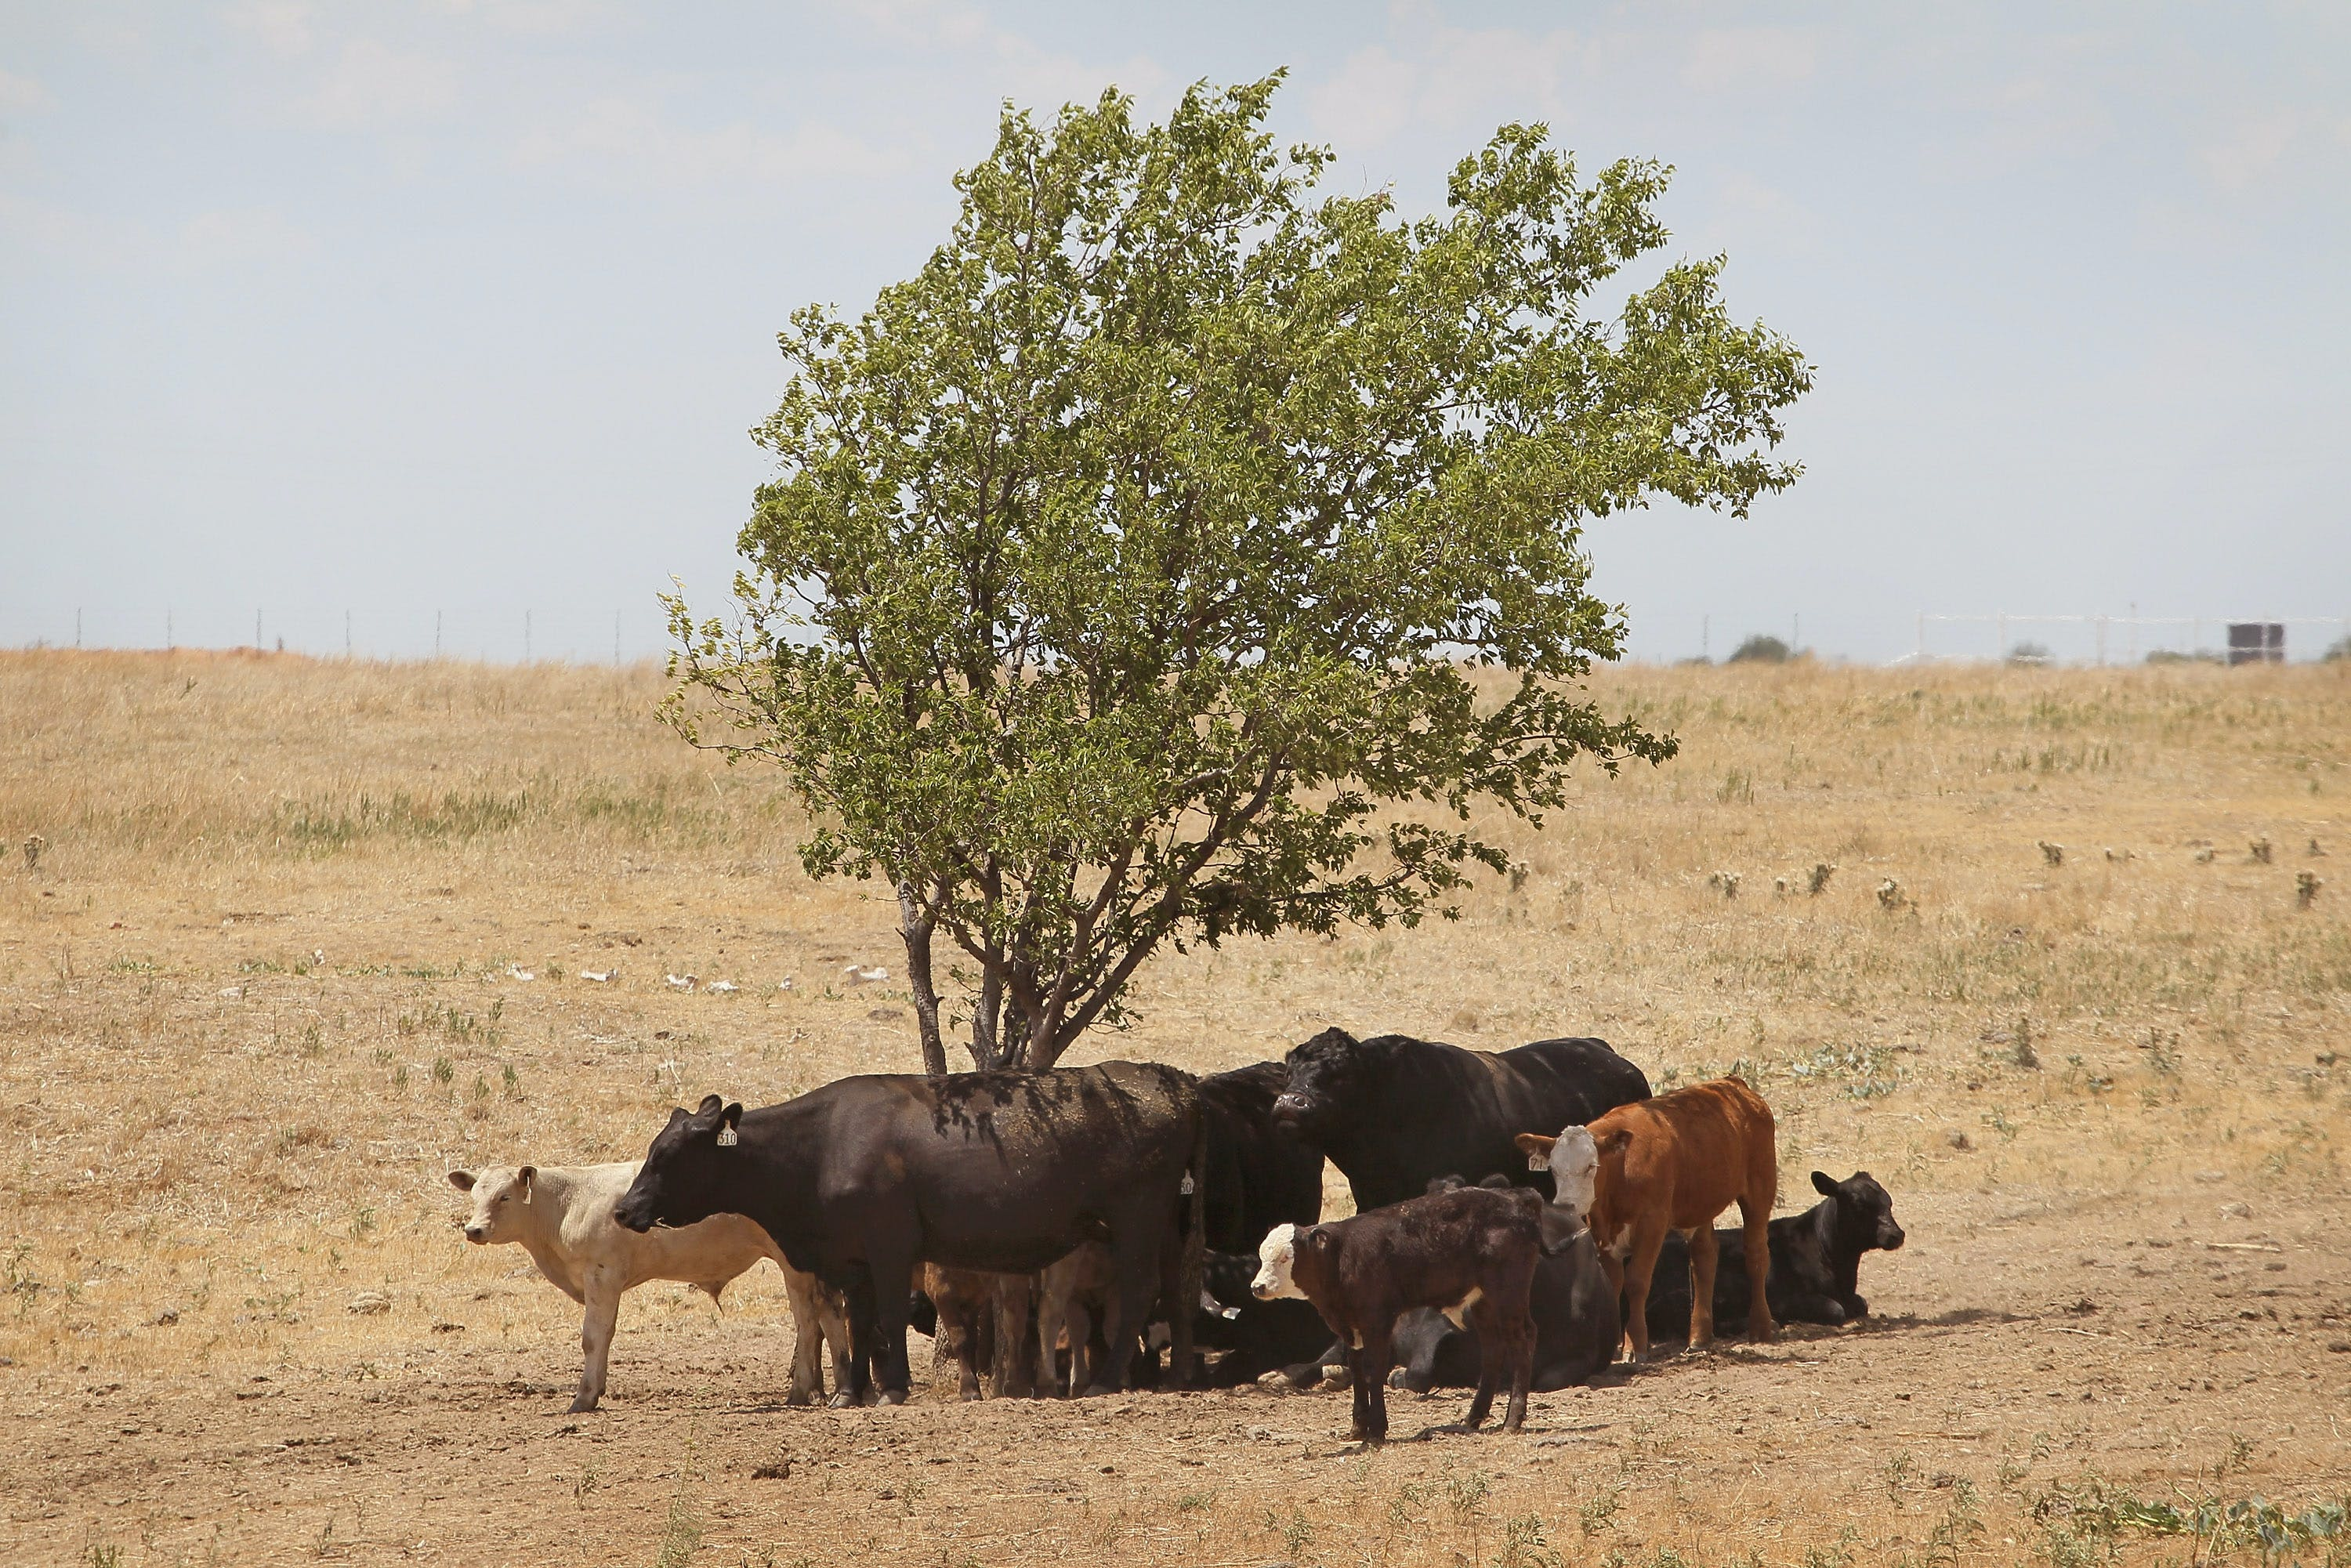 CANADIAN, TX - JULY 28: Cattle use a tree for shade as temperatures rose above 100 degrees in a pasture July 28, 2011 near Canadian, Texas. A severe drought has caused shortages of grass, hay and water, in much of the state, forcing ranchers to thin their herds or risk losing their cattle to the drought. The past nine months have been the driest in Texas since record keeping began in 1895, with 75% of the state classified as exceptional drought, the worst level. (Photo by Scott Olson/Getty Images)